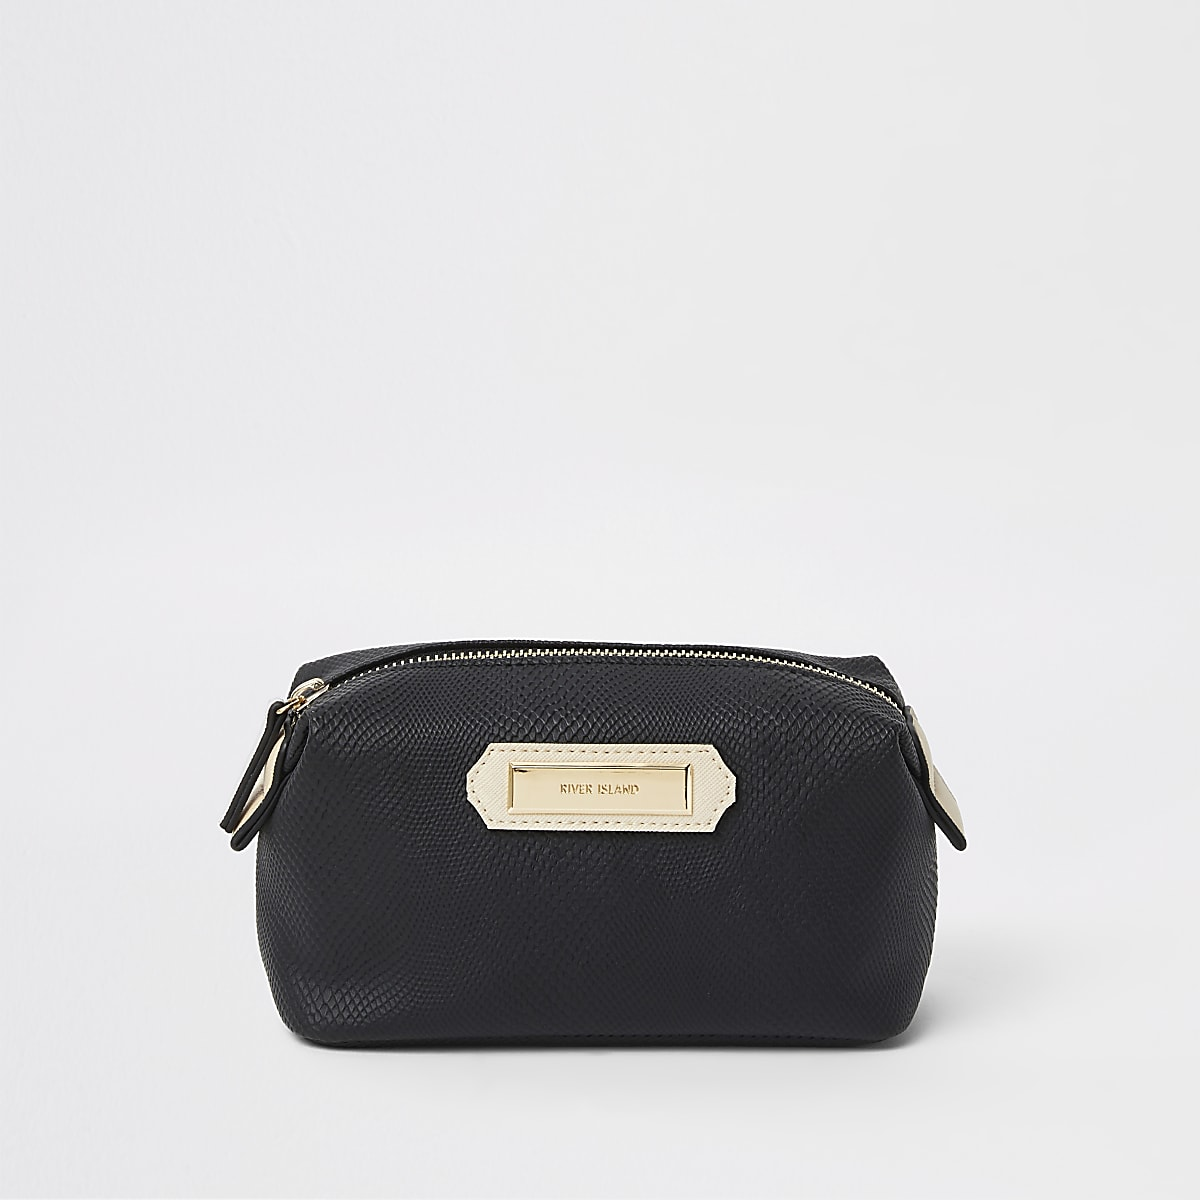 Black zip top makeup bag